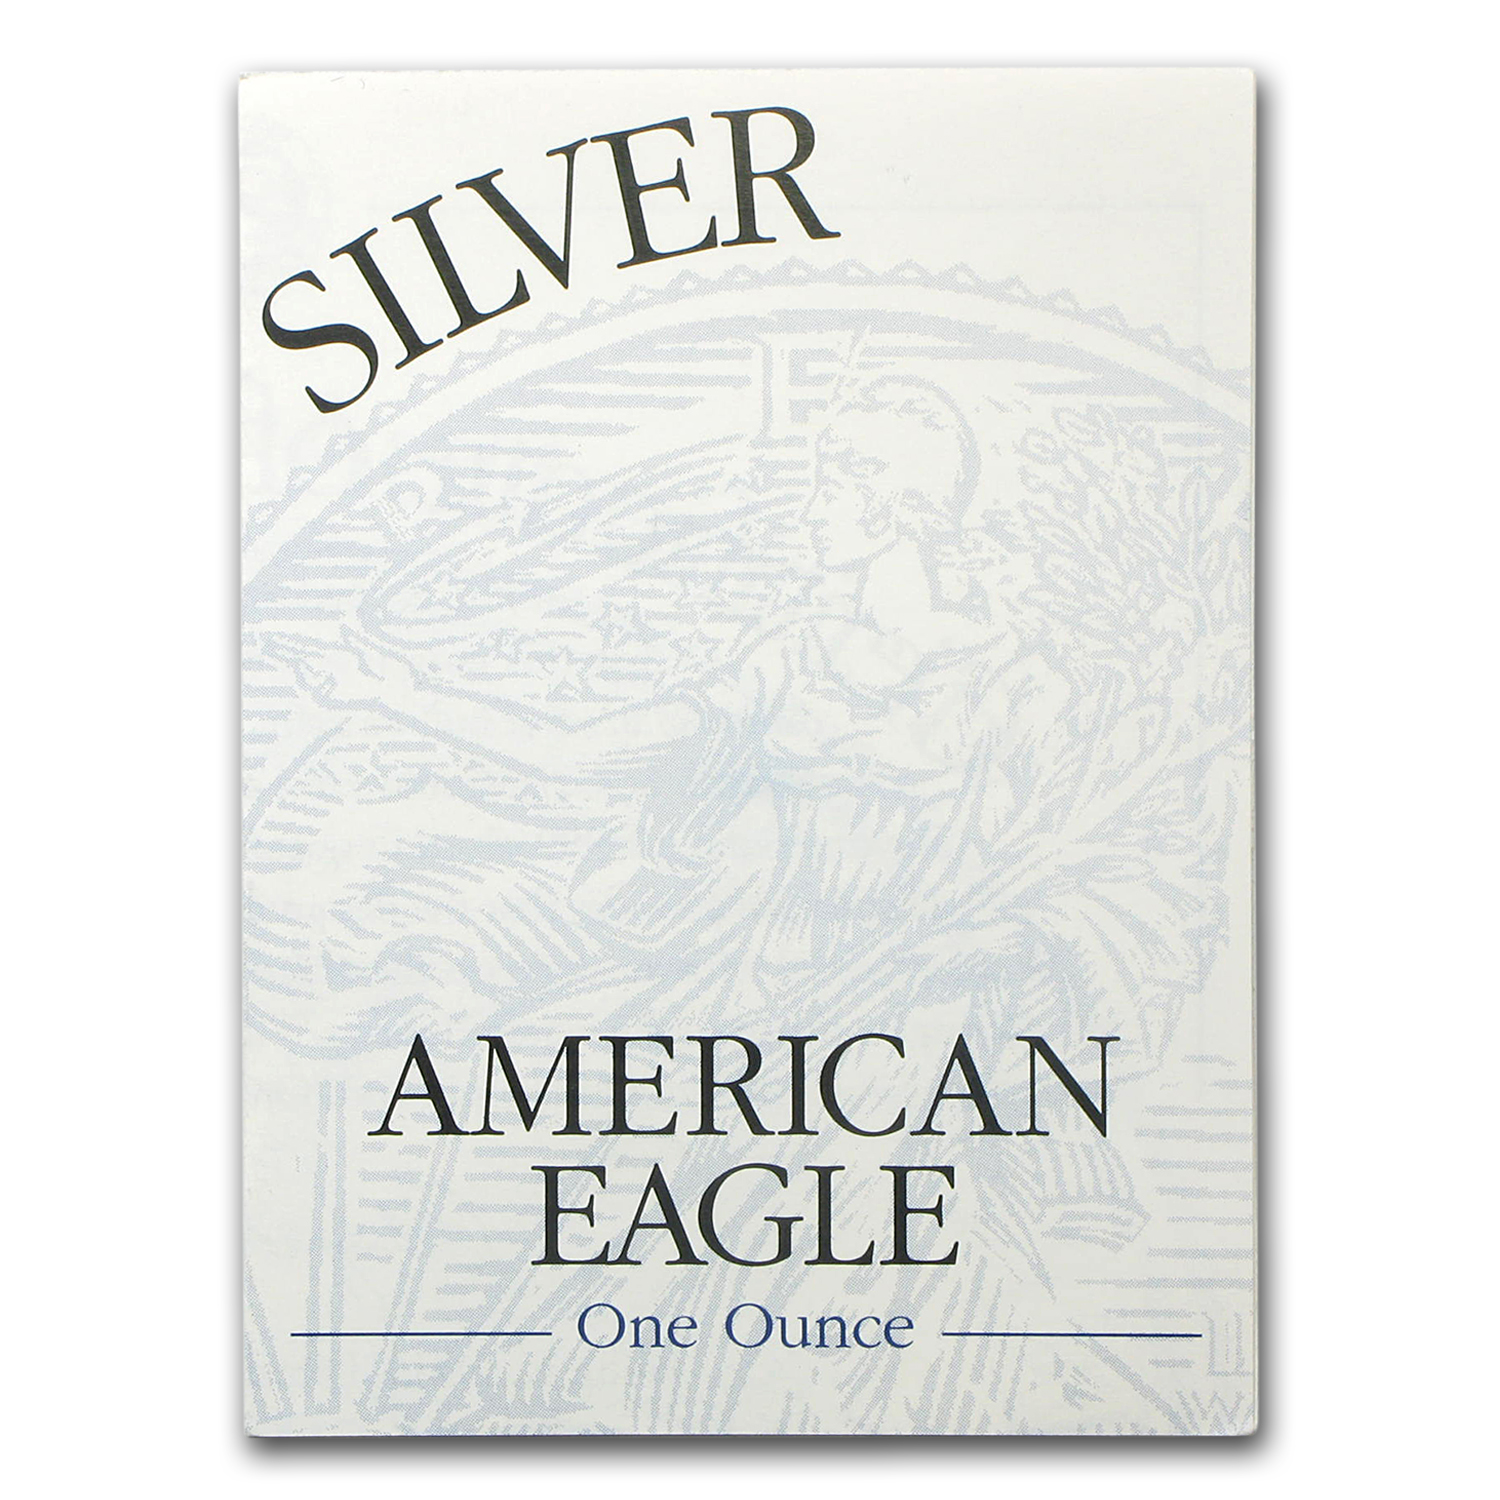 COA - 2000 US Mint 1 oz Silver American Eagle (Proof)